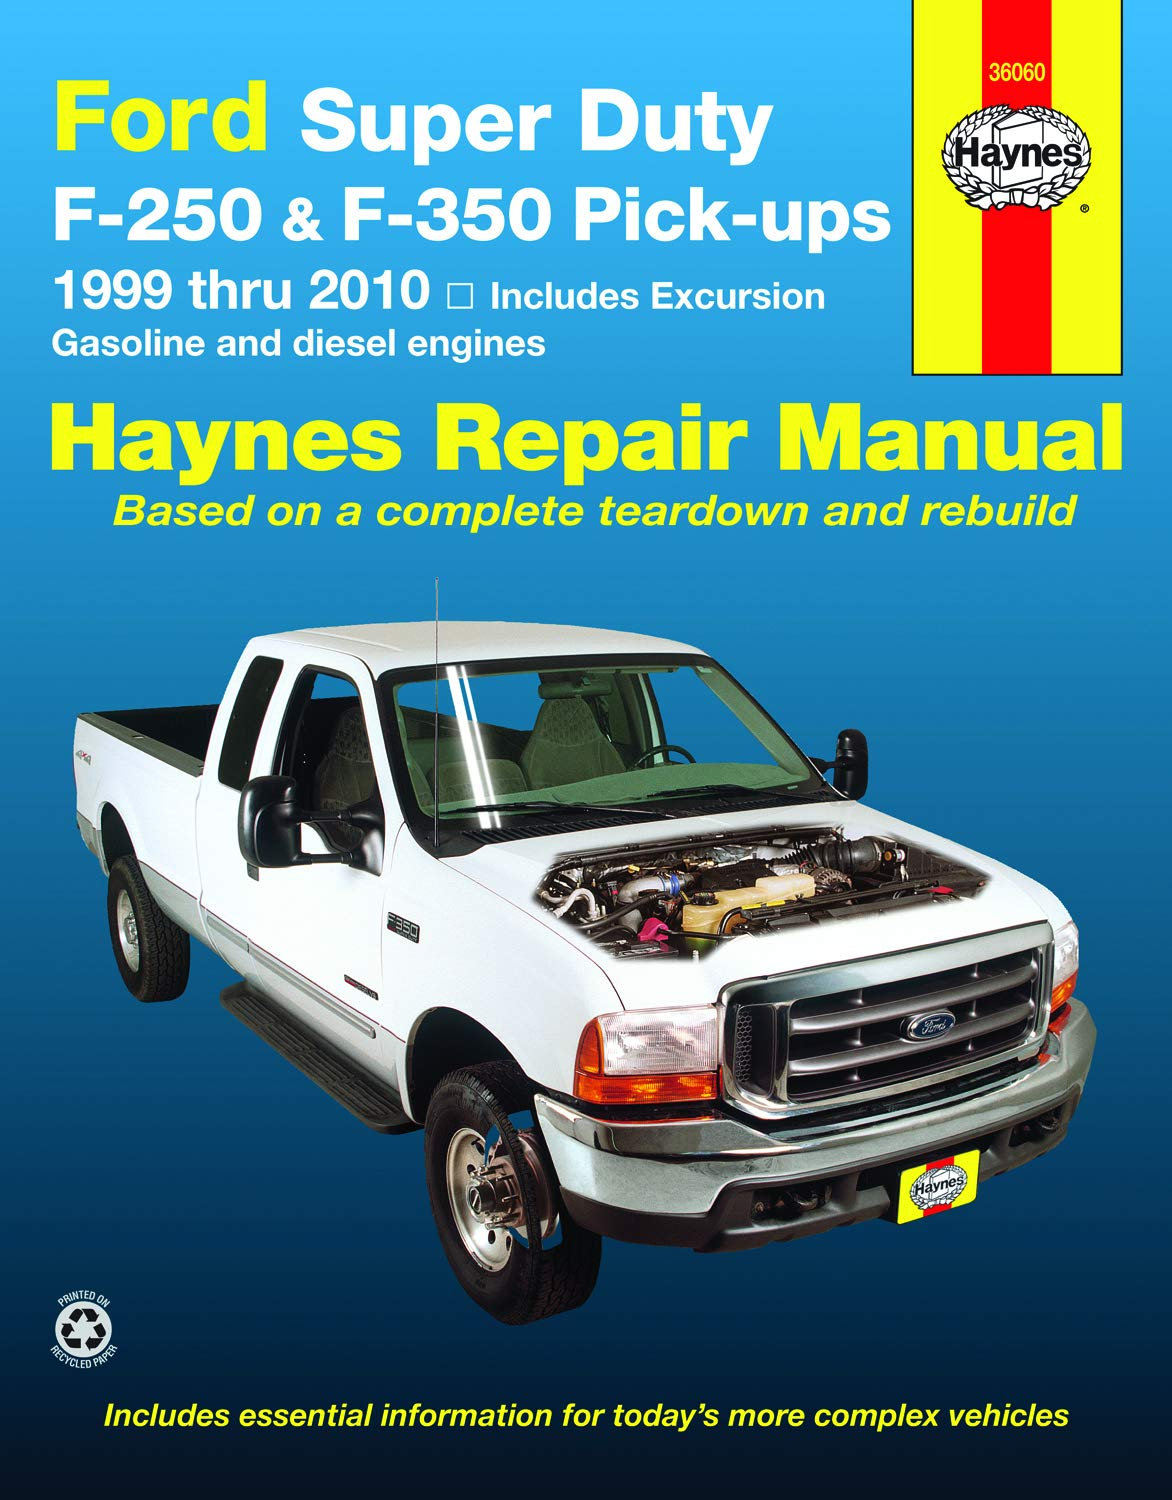 Ford Super Duty Pick-up & Excursion for Ford Super Duty F-250 & F-350  Pick-ups & Excursion 999-10) Haynes Repair Manual: Includes Gasoline and  Diesel Engines: Haynes, J.J.: 9781563928567: Amazon.com: Books | Ford F 350 Engine Schematics |  | Amazon.com